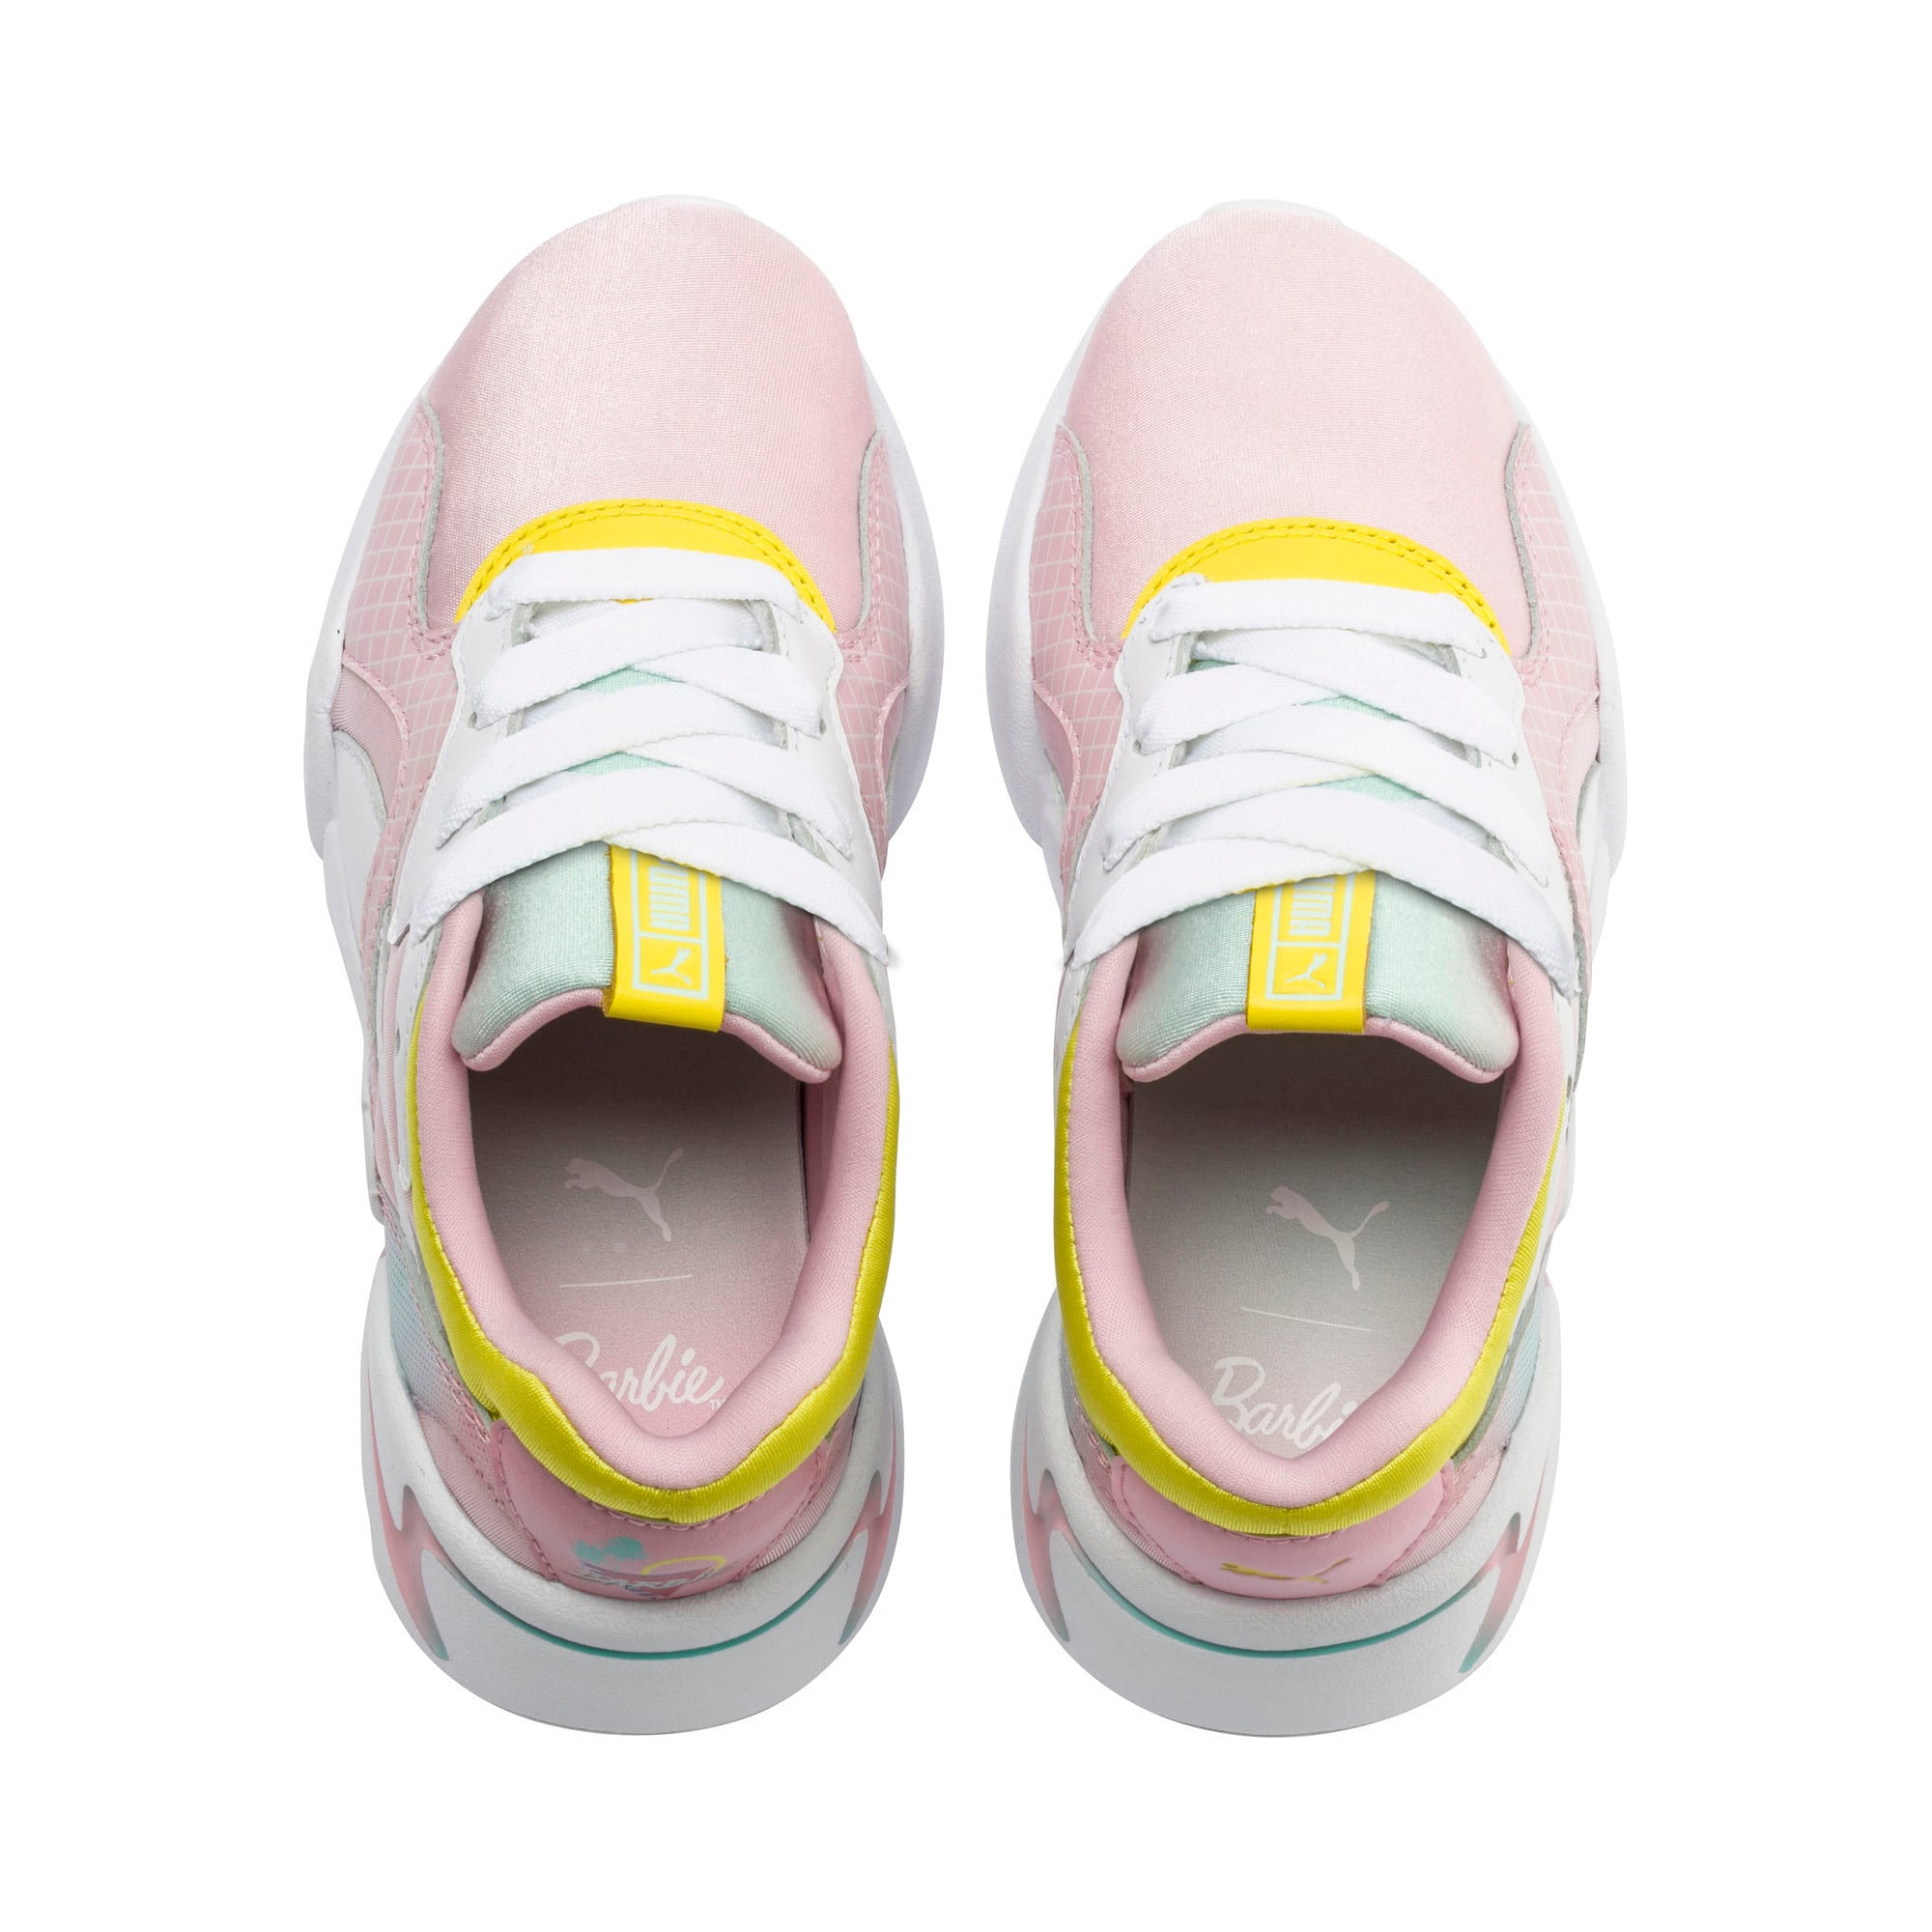 Thumbnail 6 of Nova x Barbie Little Kids' Shoes, Orchid Pink-Puma White, medium